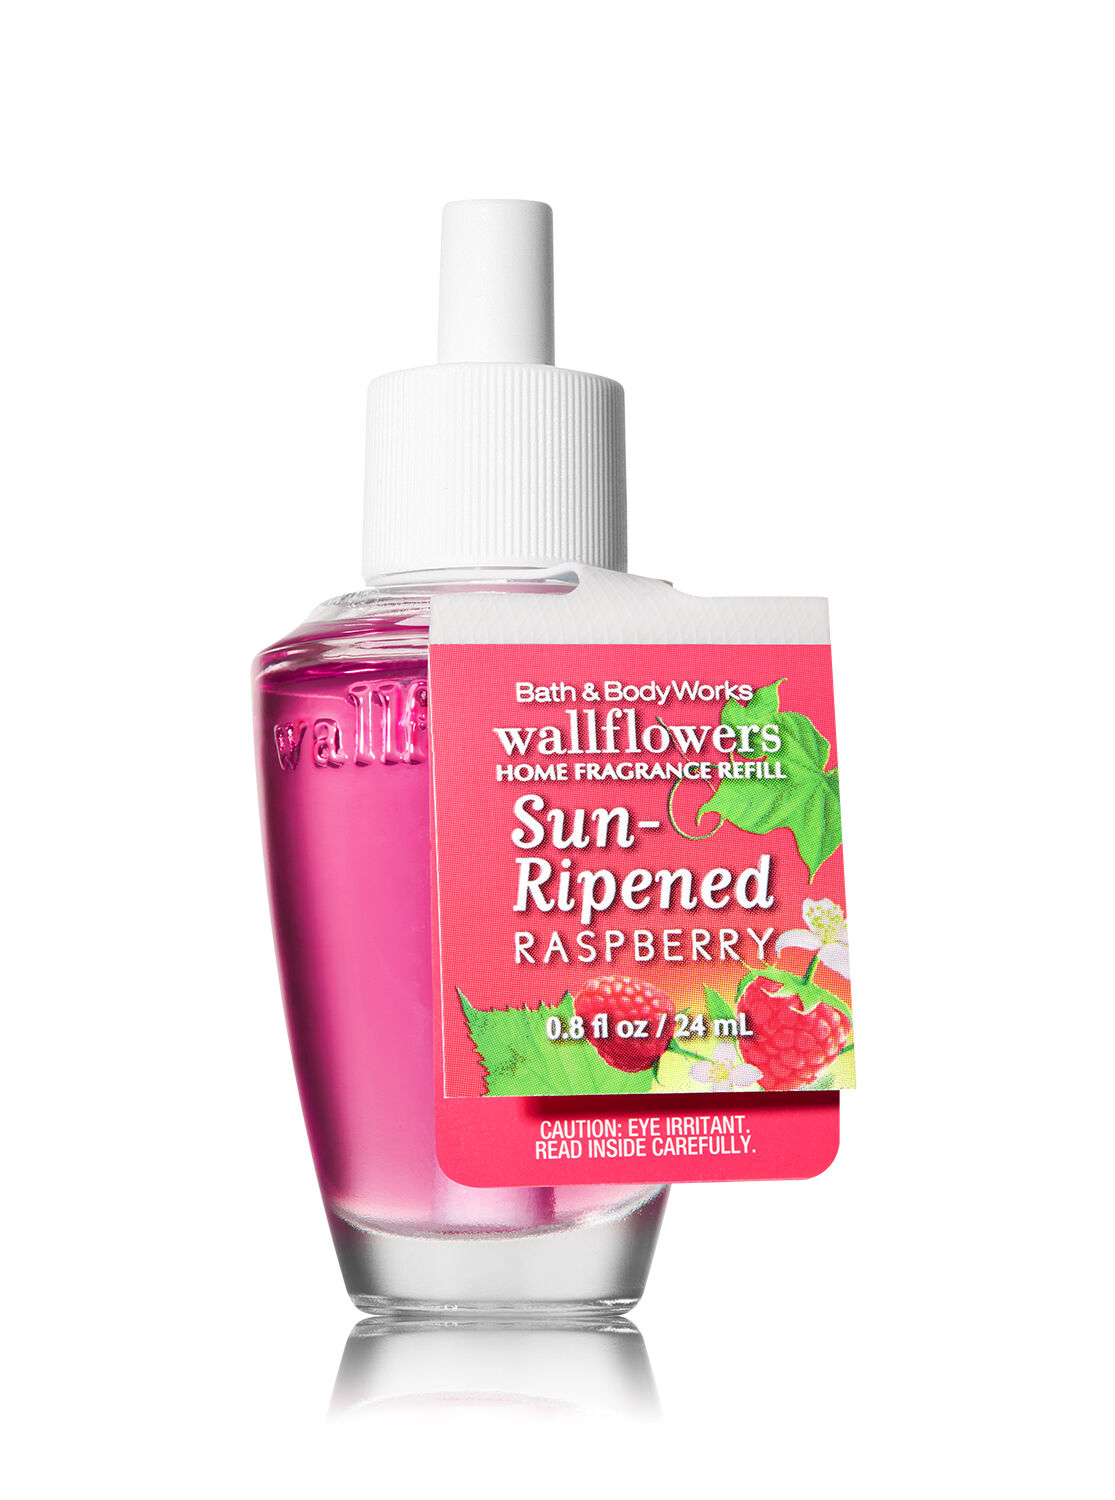 Sun Ripened Raspberry Wallflowers Fragrance Refill Bath And Body Works